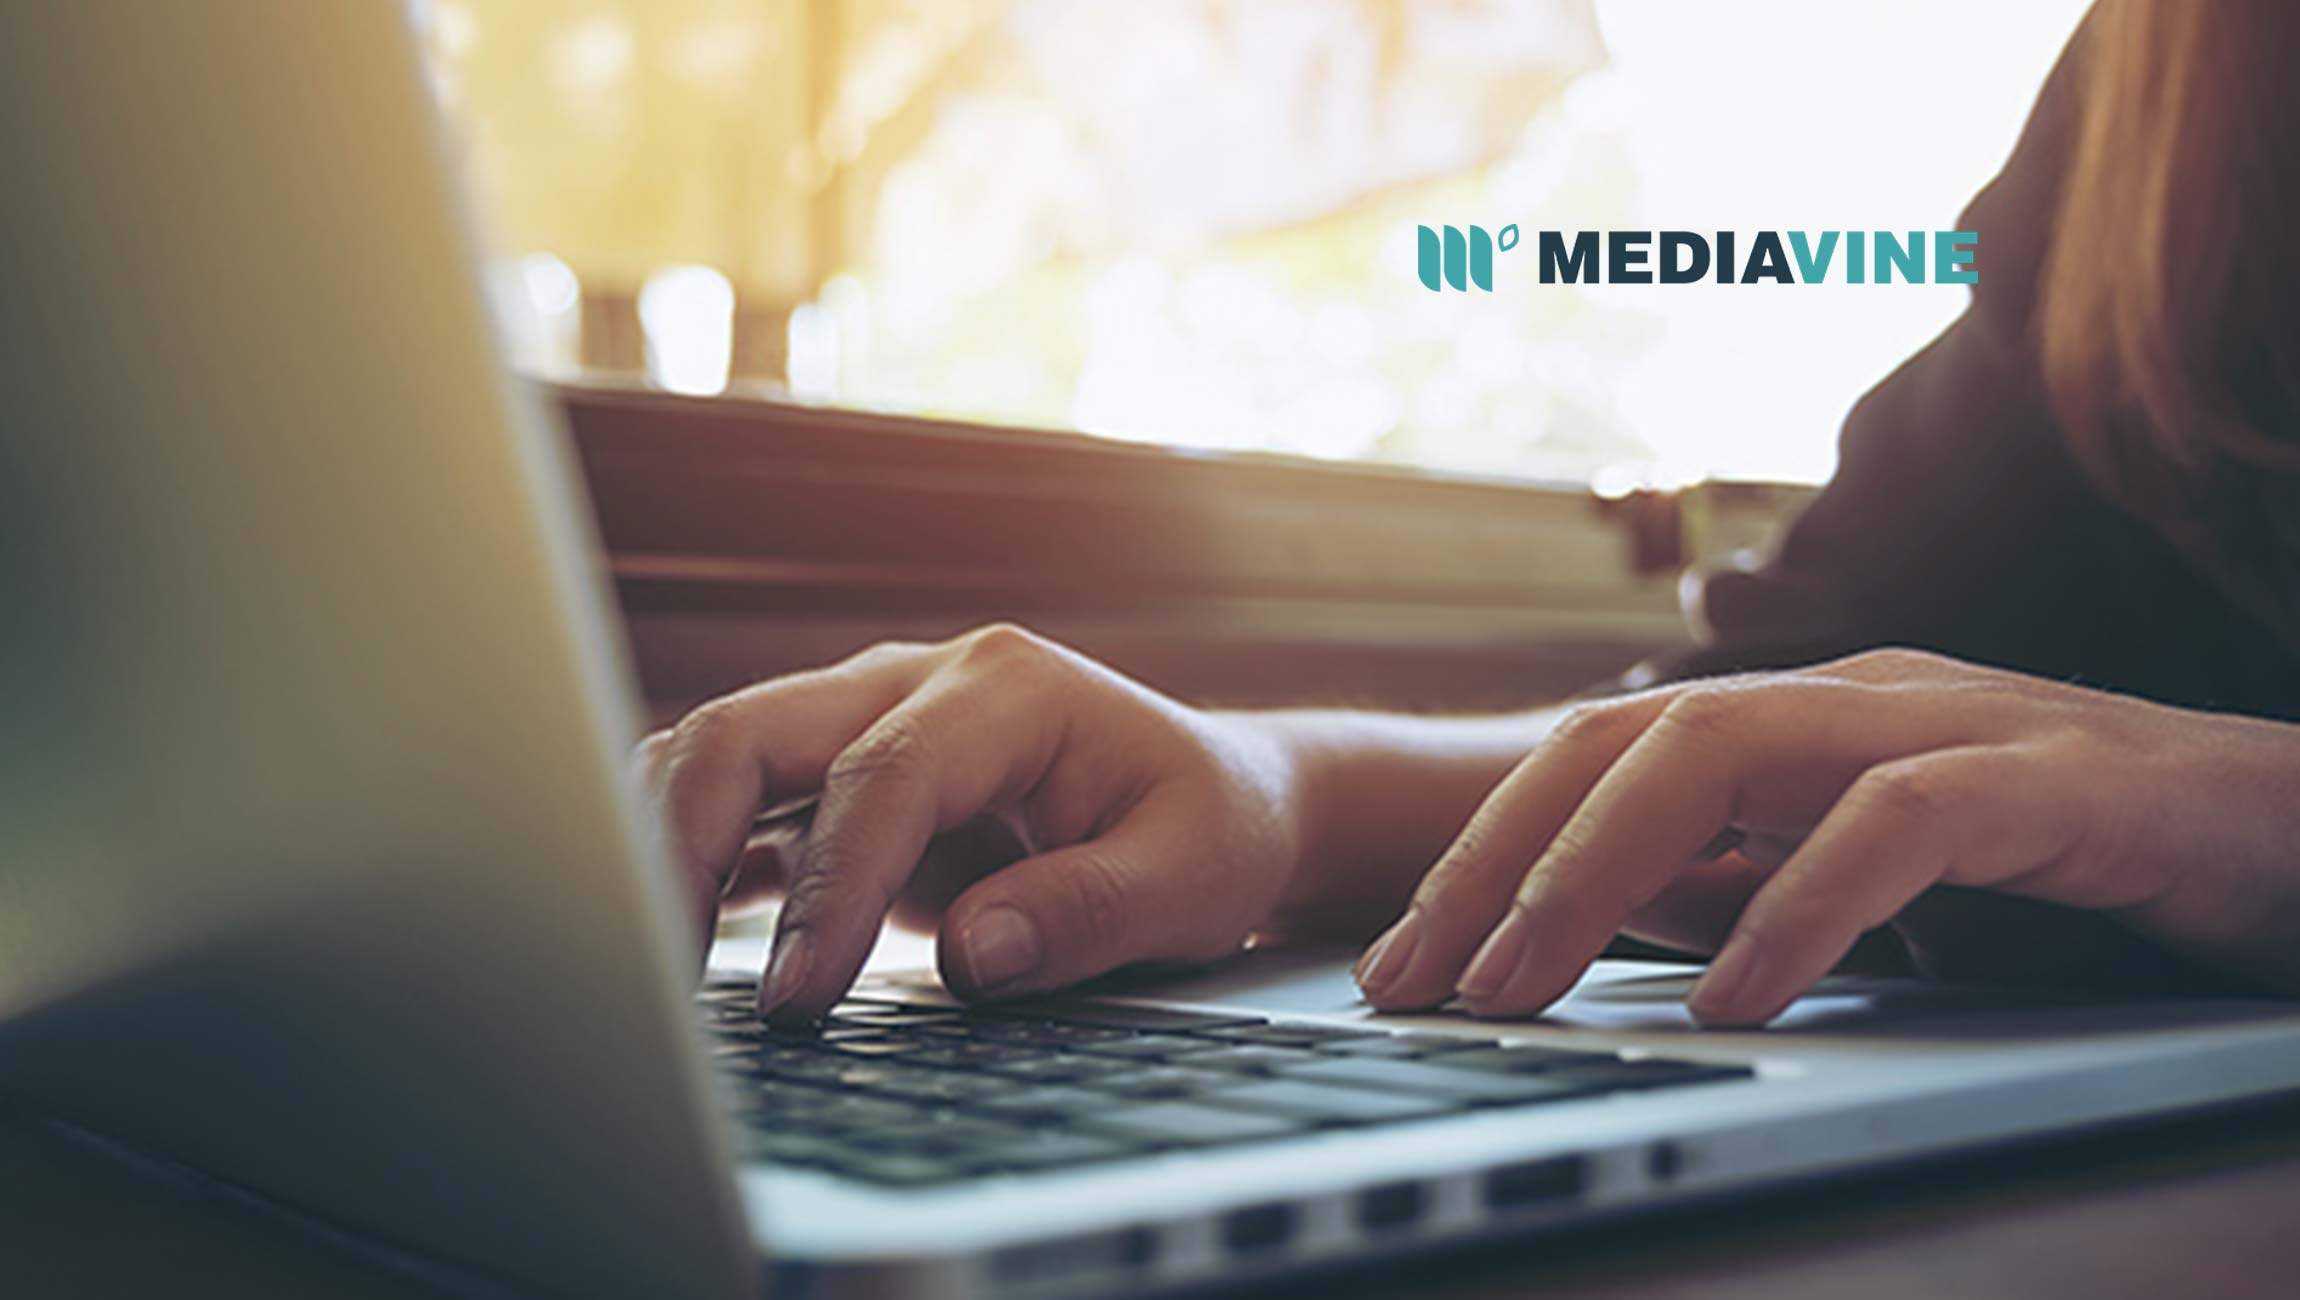 Thousands of Publishers Beta Test Integration between Mediavine and Unified ID 2.0